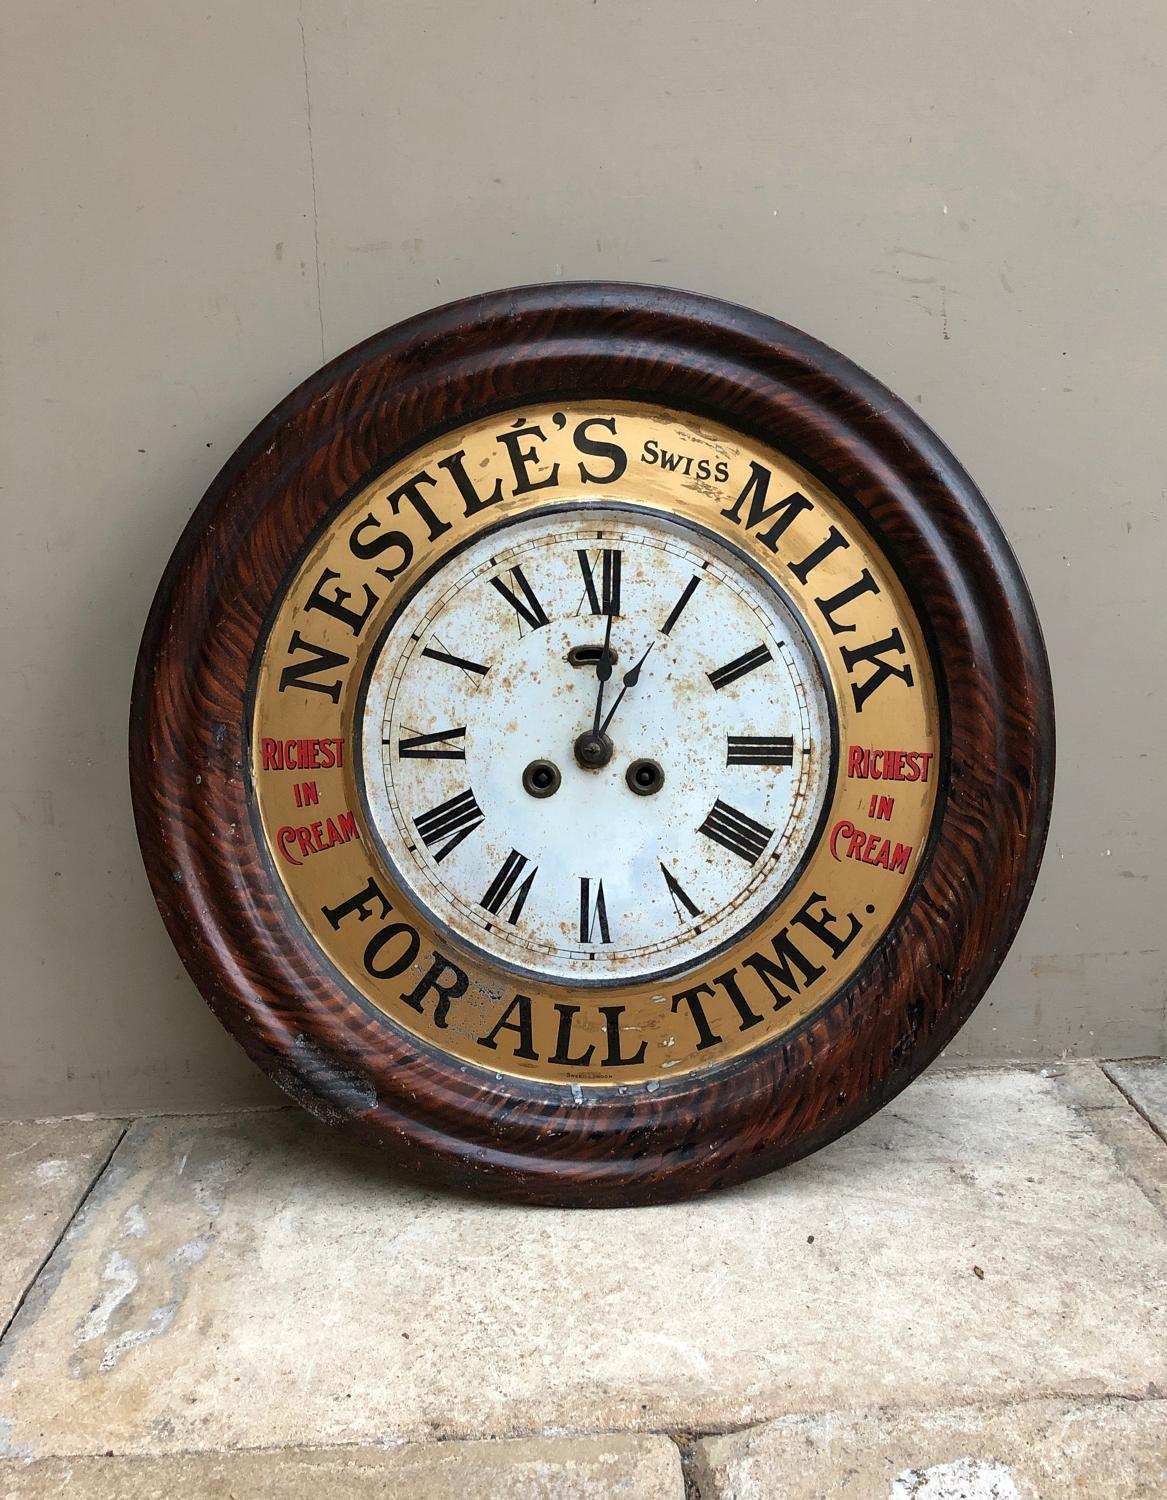 Edwardian Toleware Advertising Clock - Nestles Swiss Milk For All Time